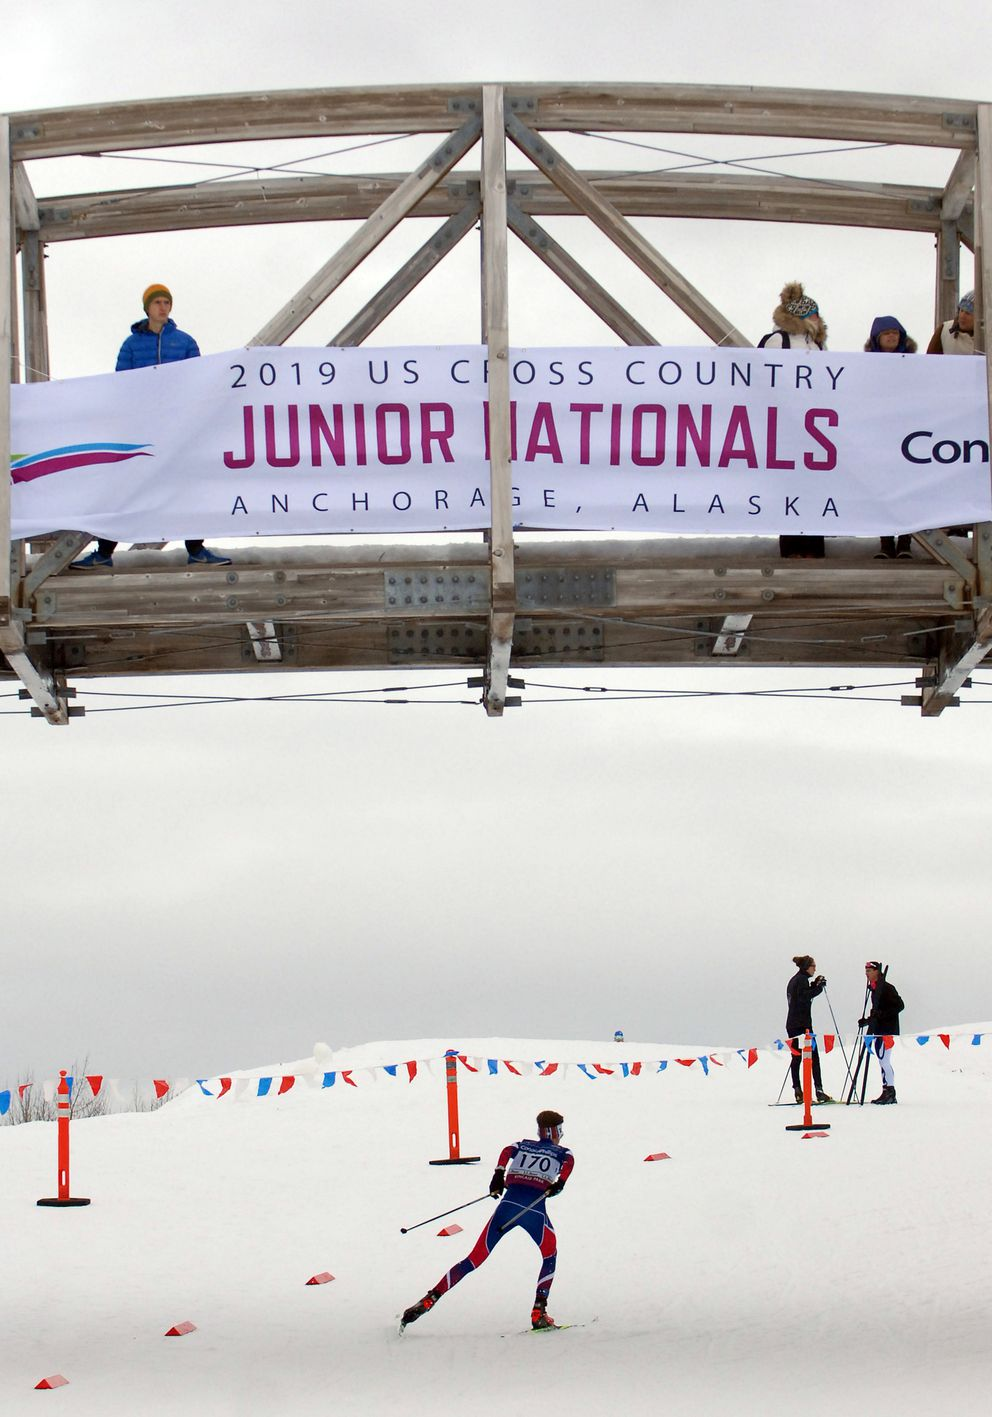 Skiers encountered rain and snow on the first day of racing Monday. (Matt Tunseth / ADN)